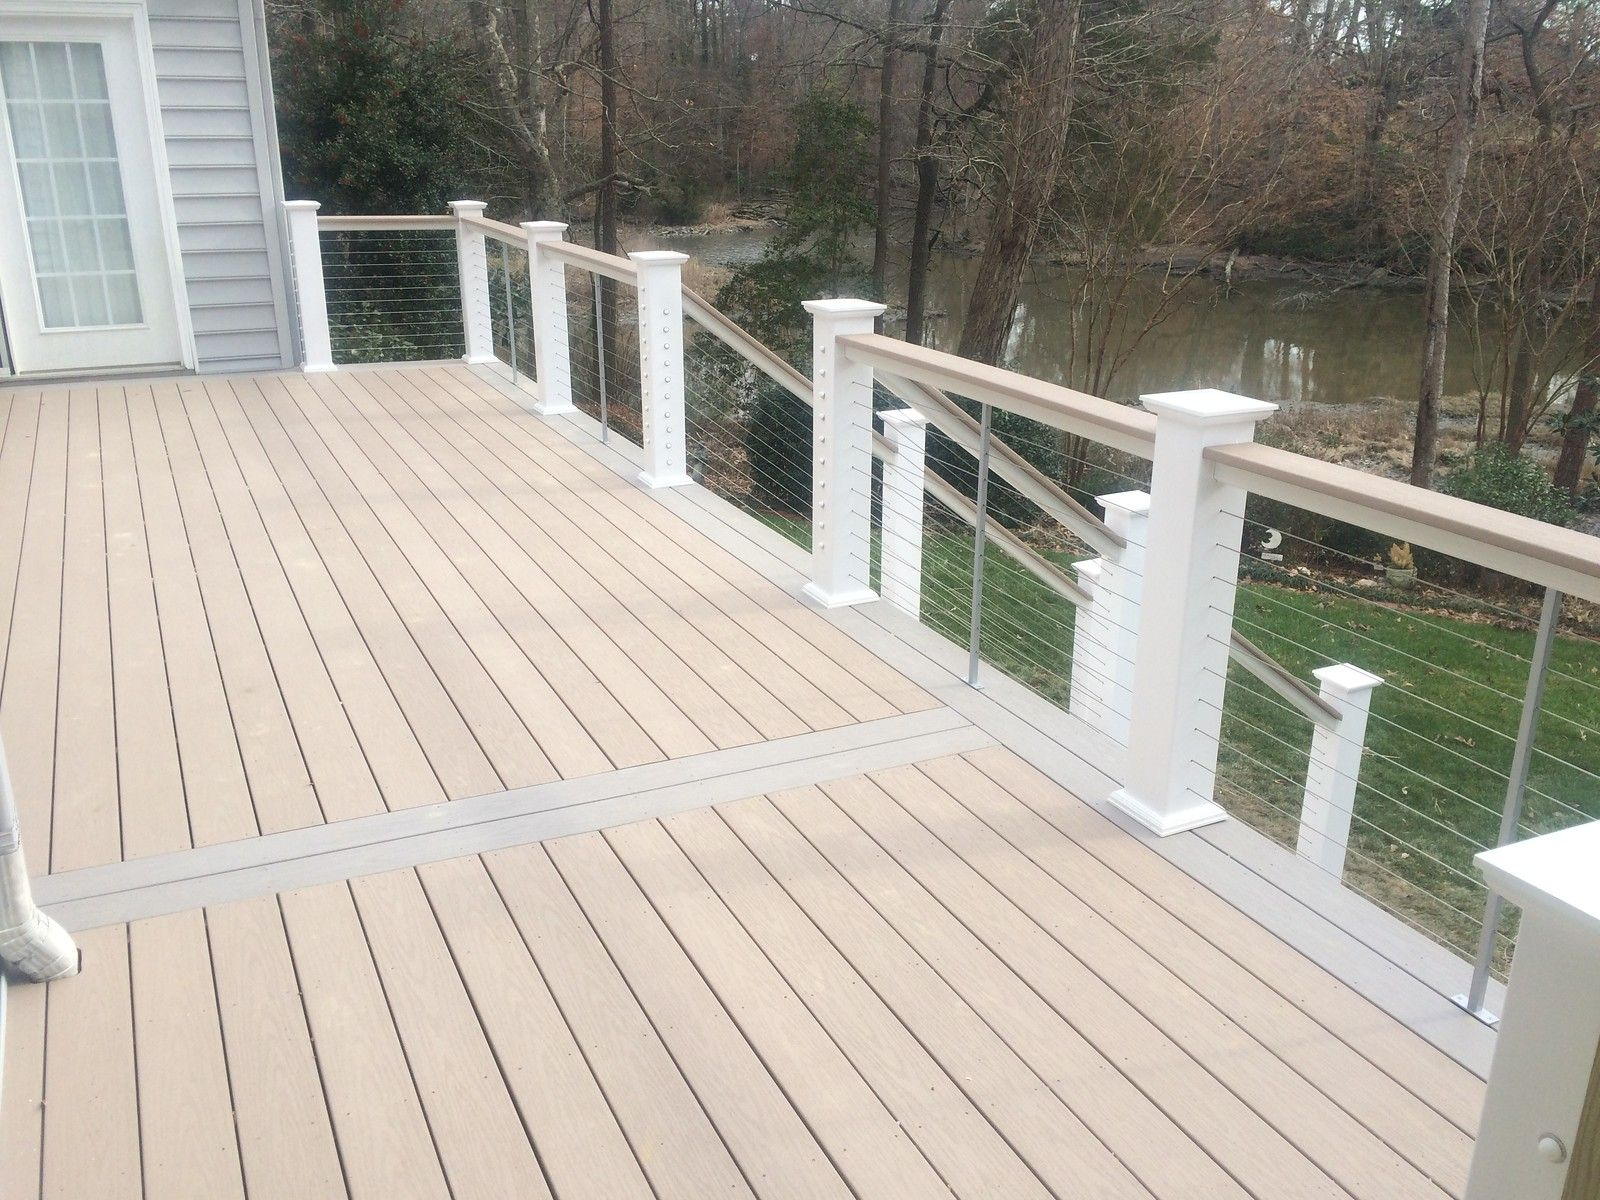 Outdoor Living Gallery Deck Railing Design Deck Deck Pictures